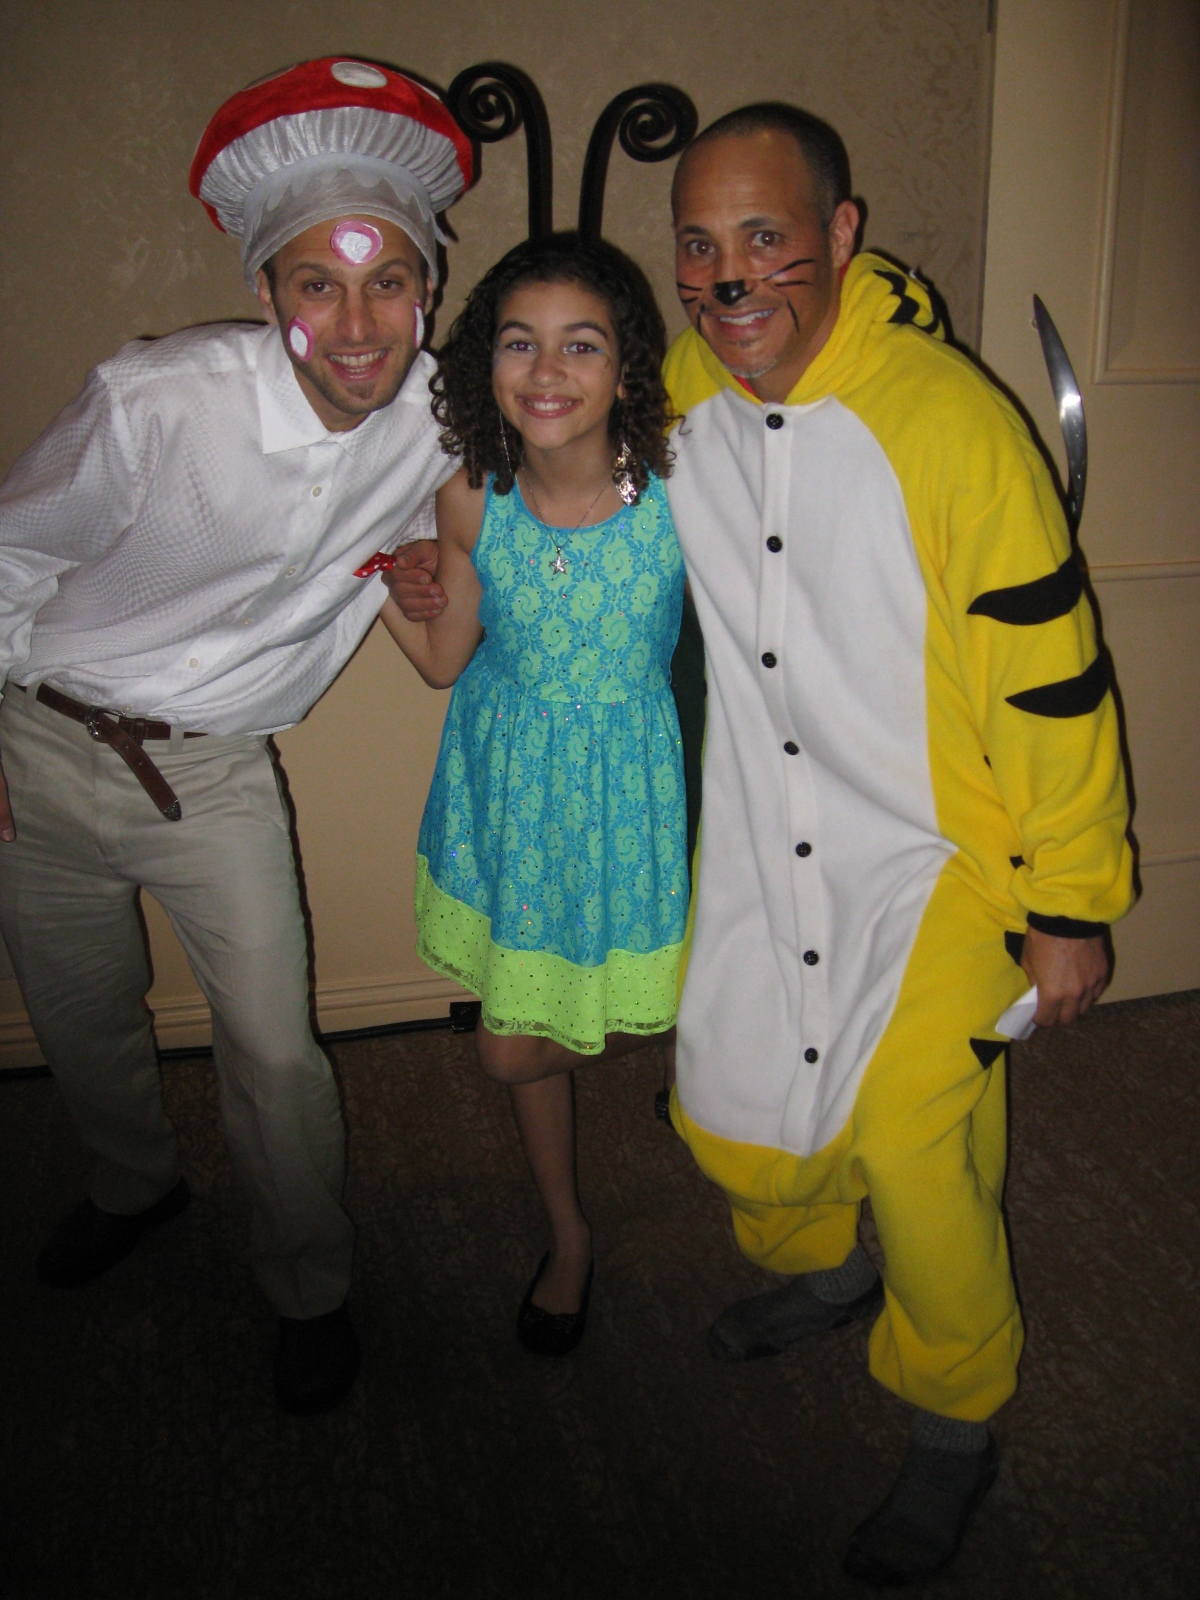 Moni with Aaron Ableman and Dave Room of Pacha's Pajamas